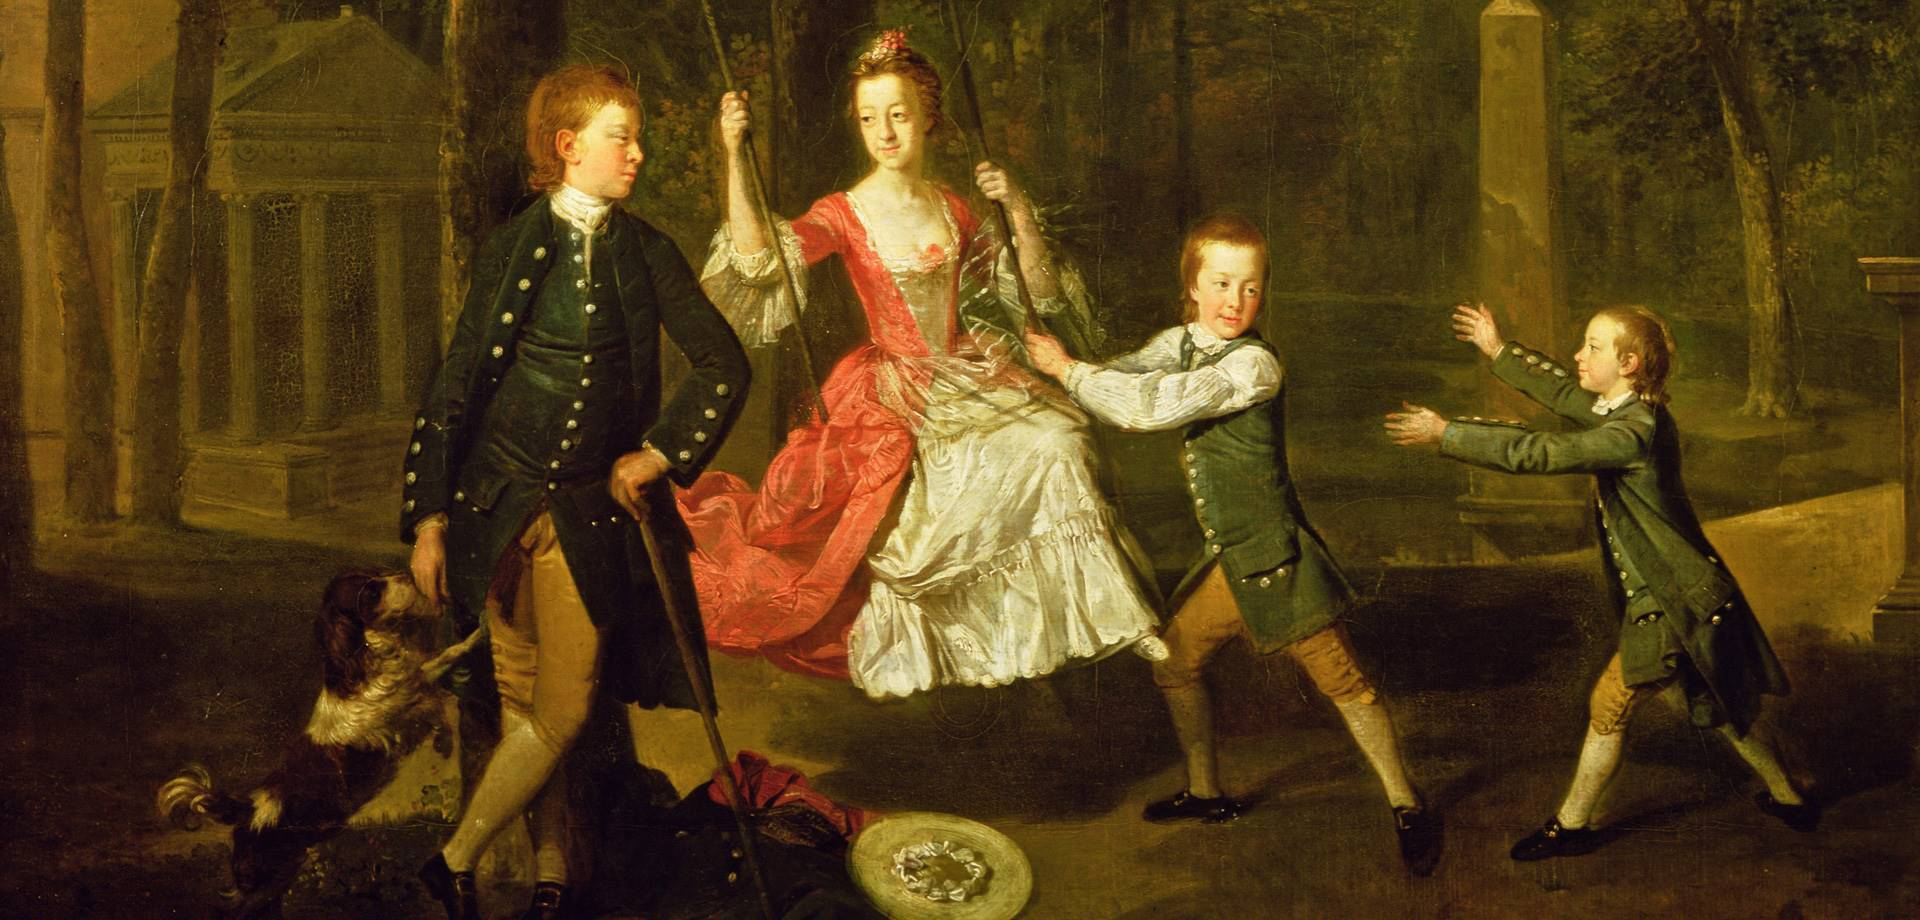 Portrait of the children of the 4th Duke of Devonshire in the gardens of Chiswick House, London